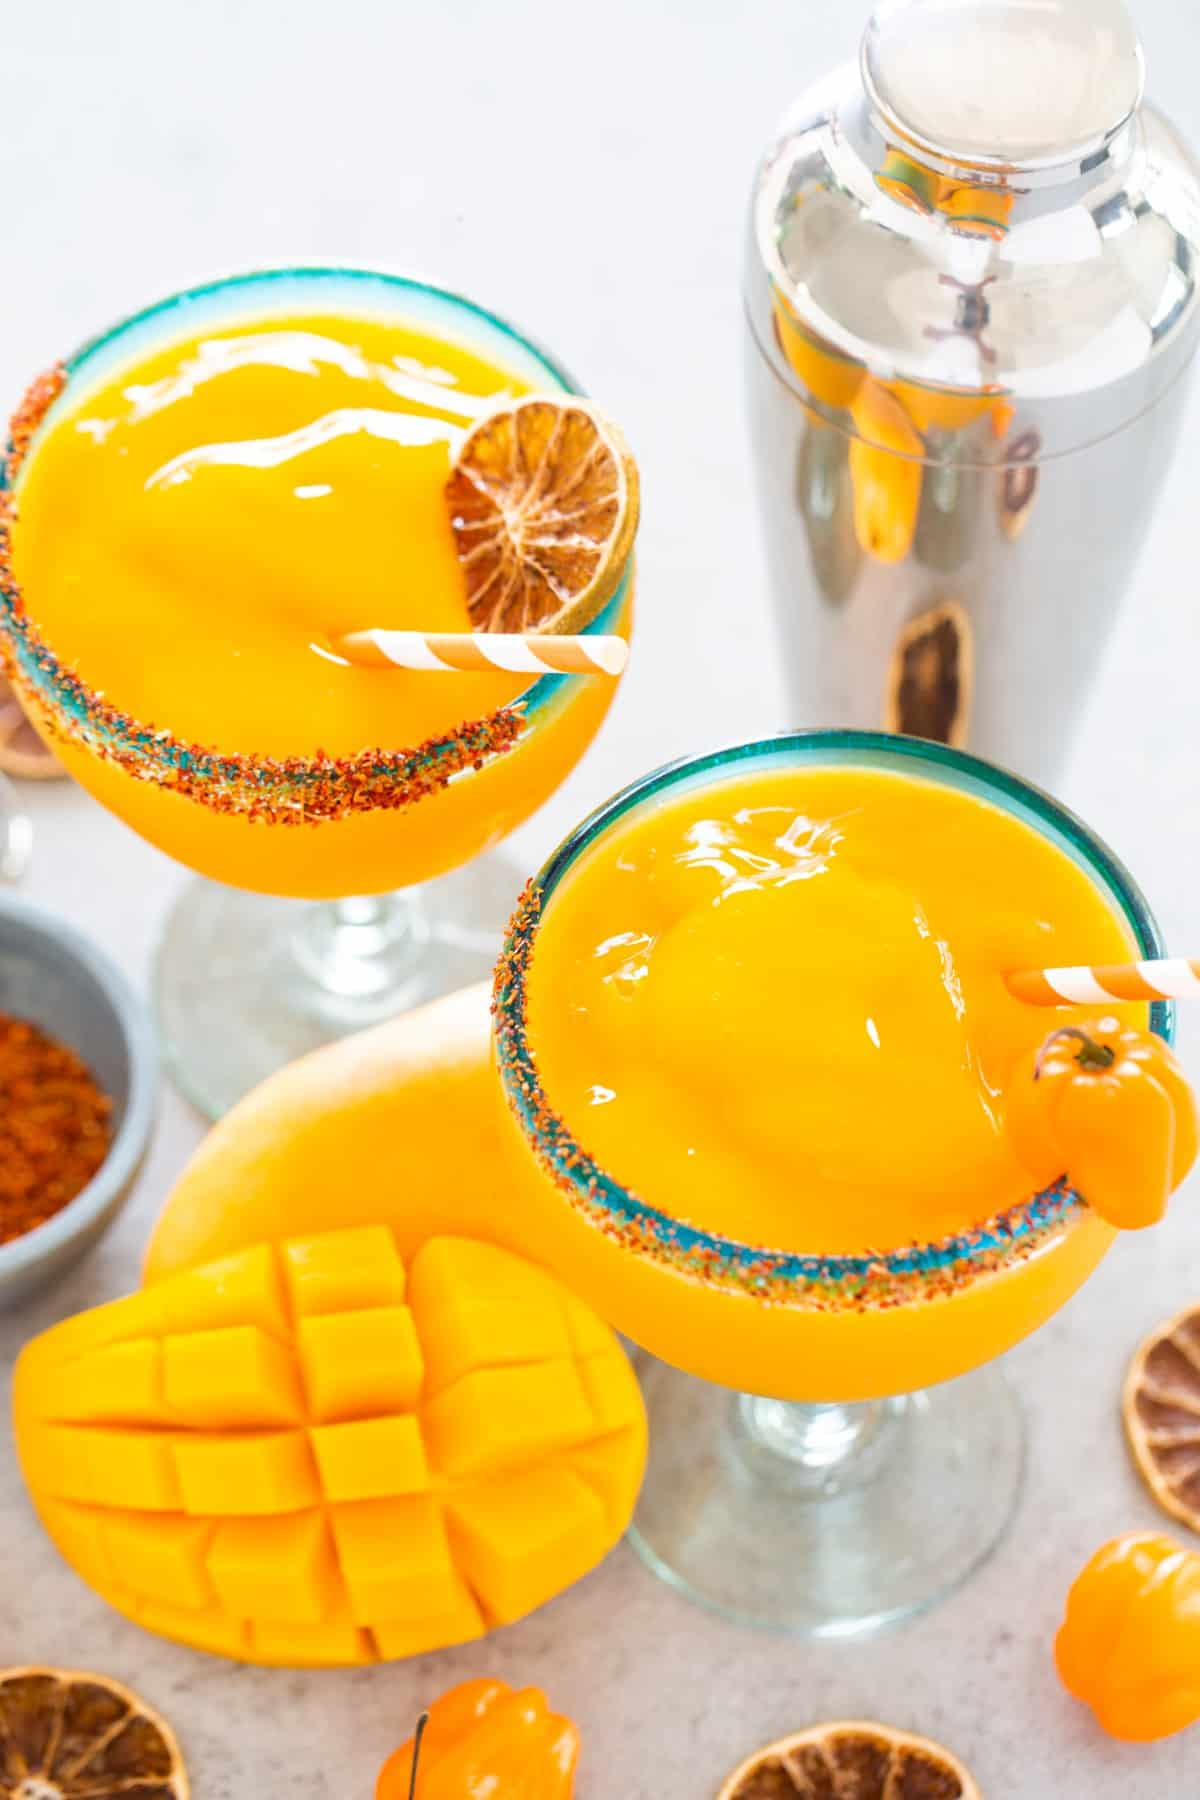 Two margaritas with garnish and cocktail shaker, also fresh cubed mango.